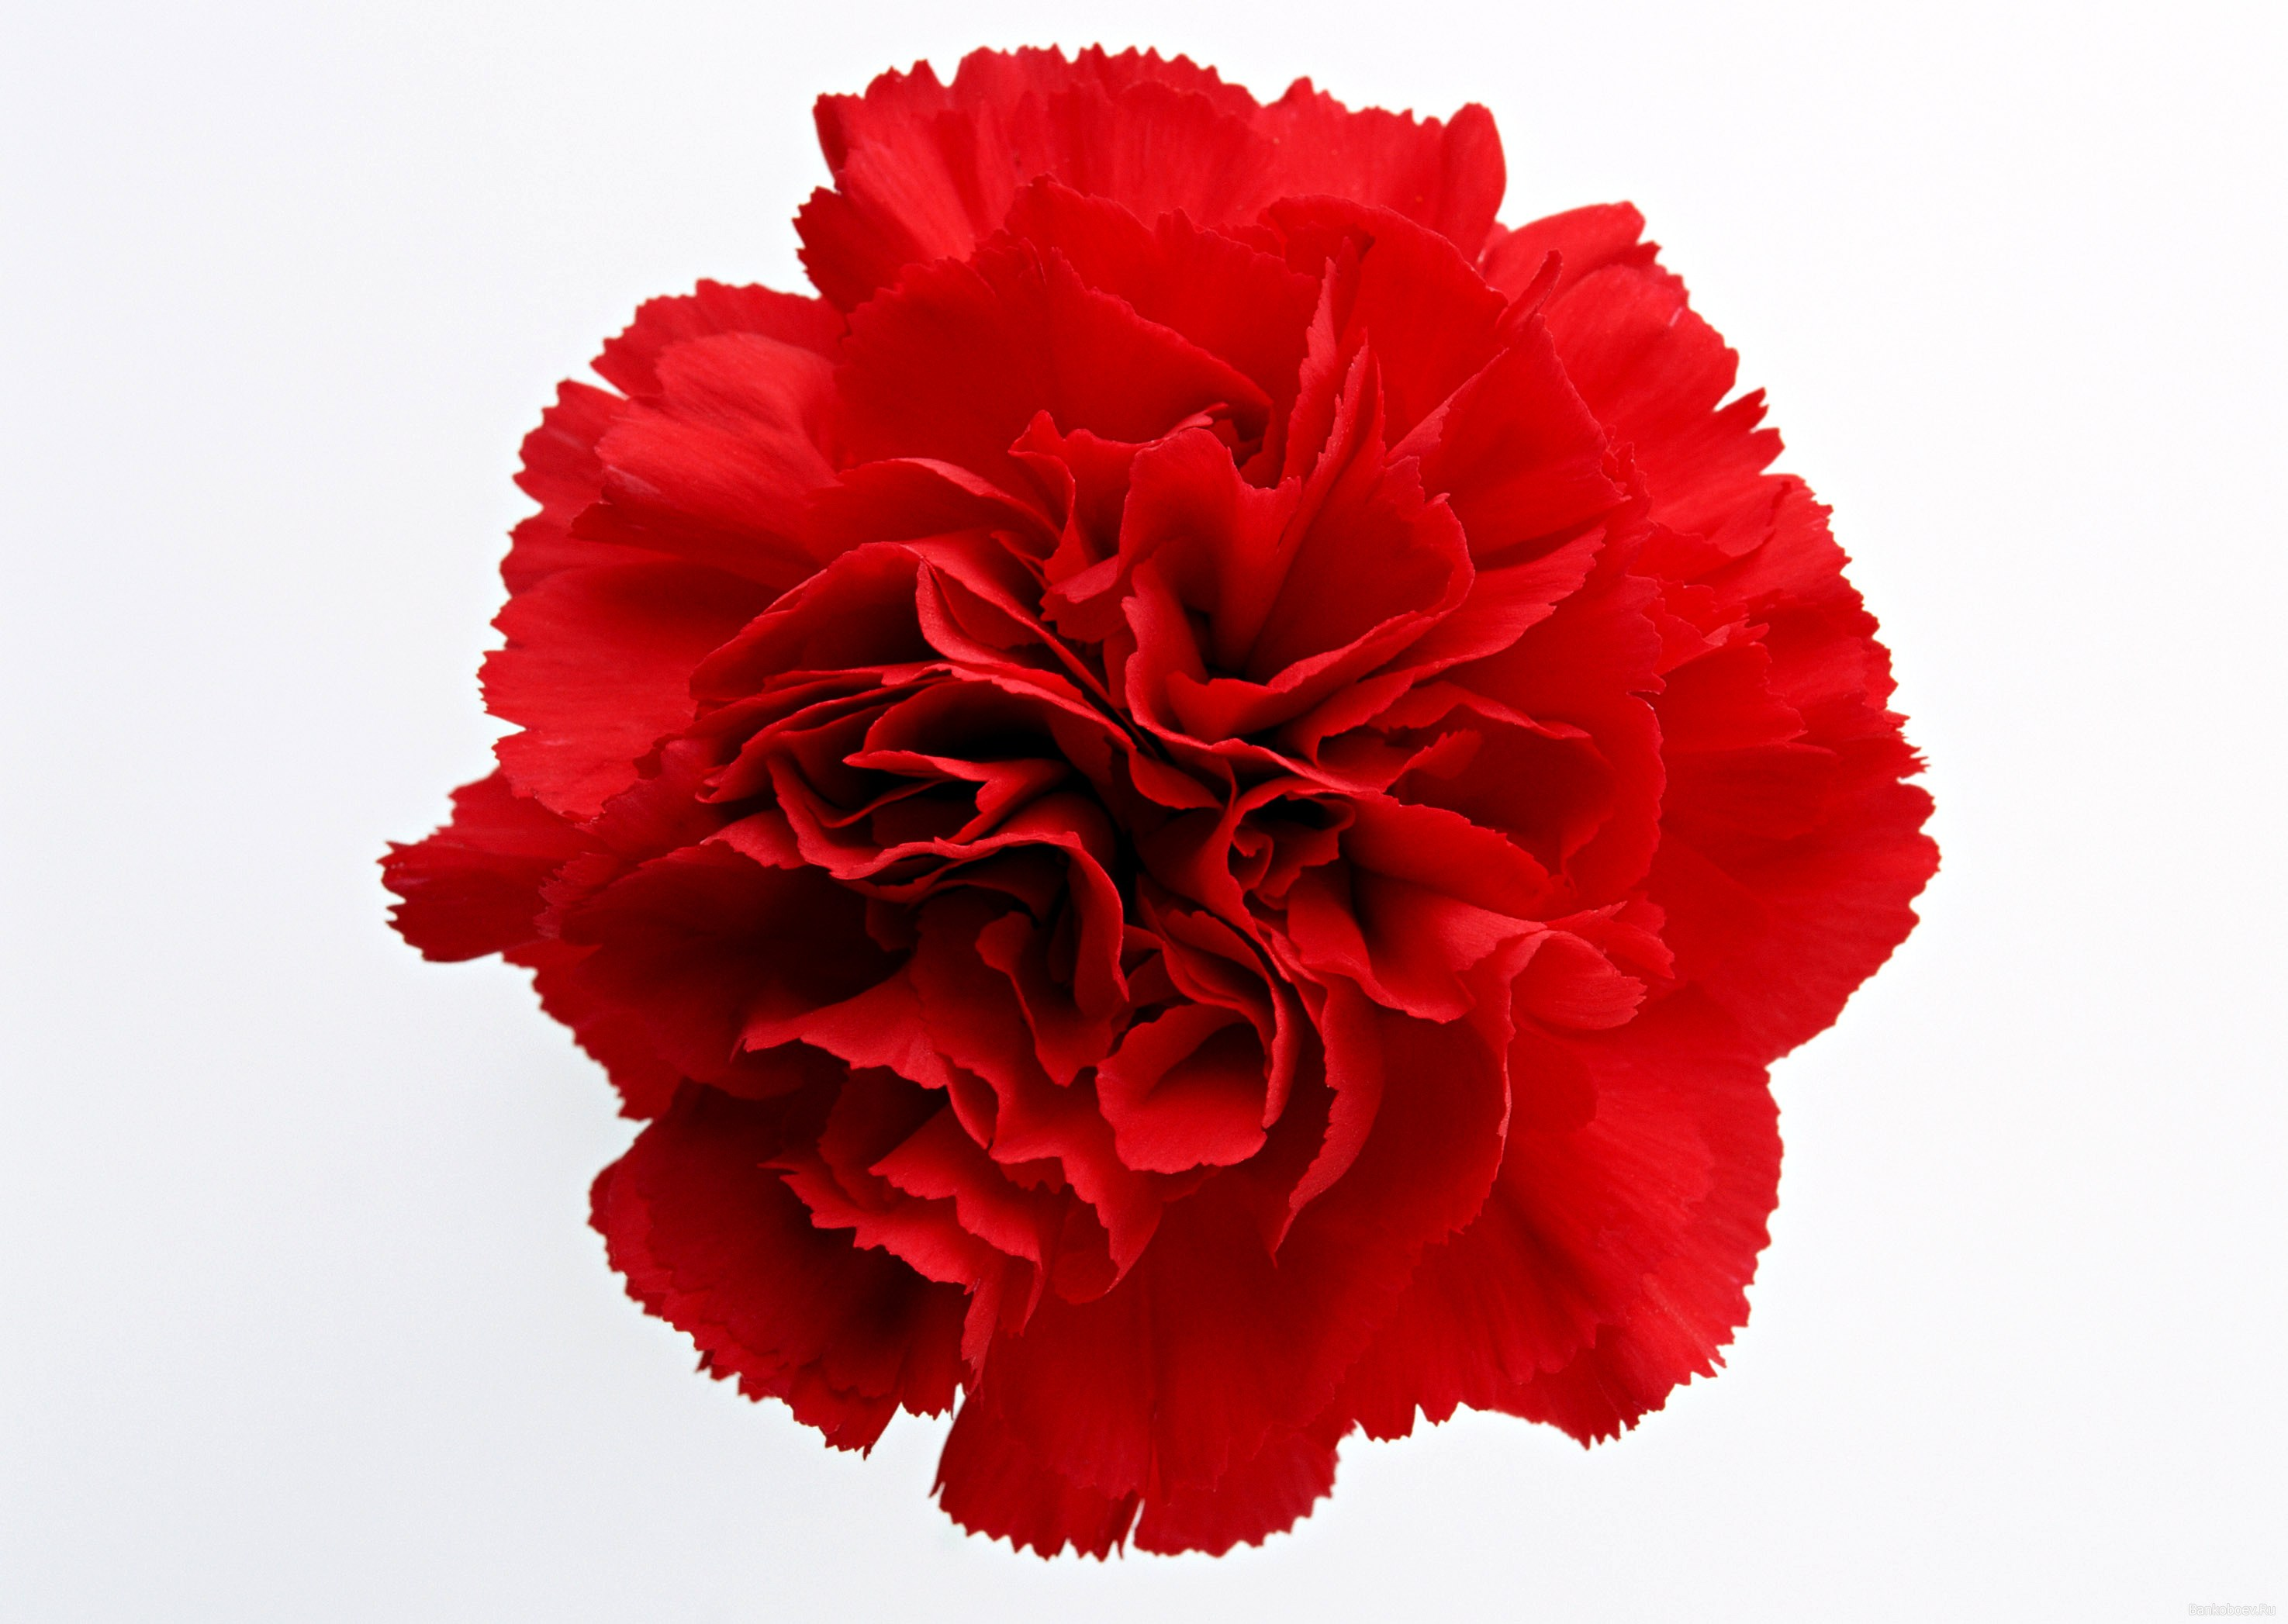 Red carnation clipart 6 » Clipart Portal.